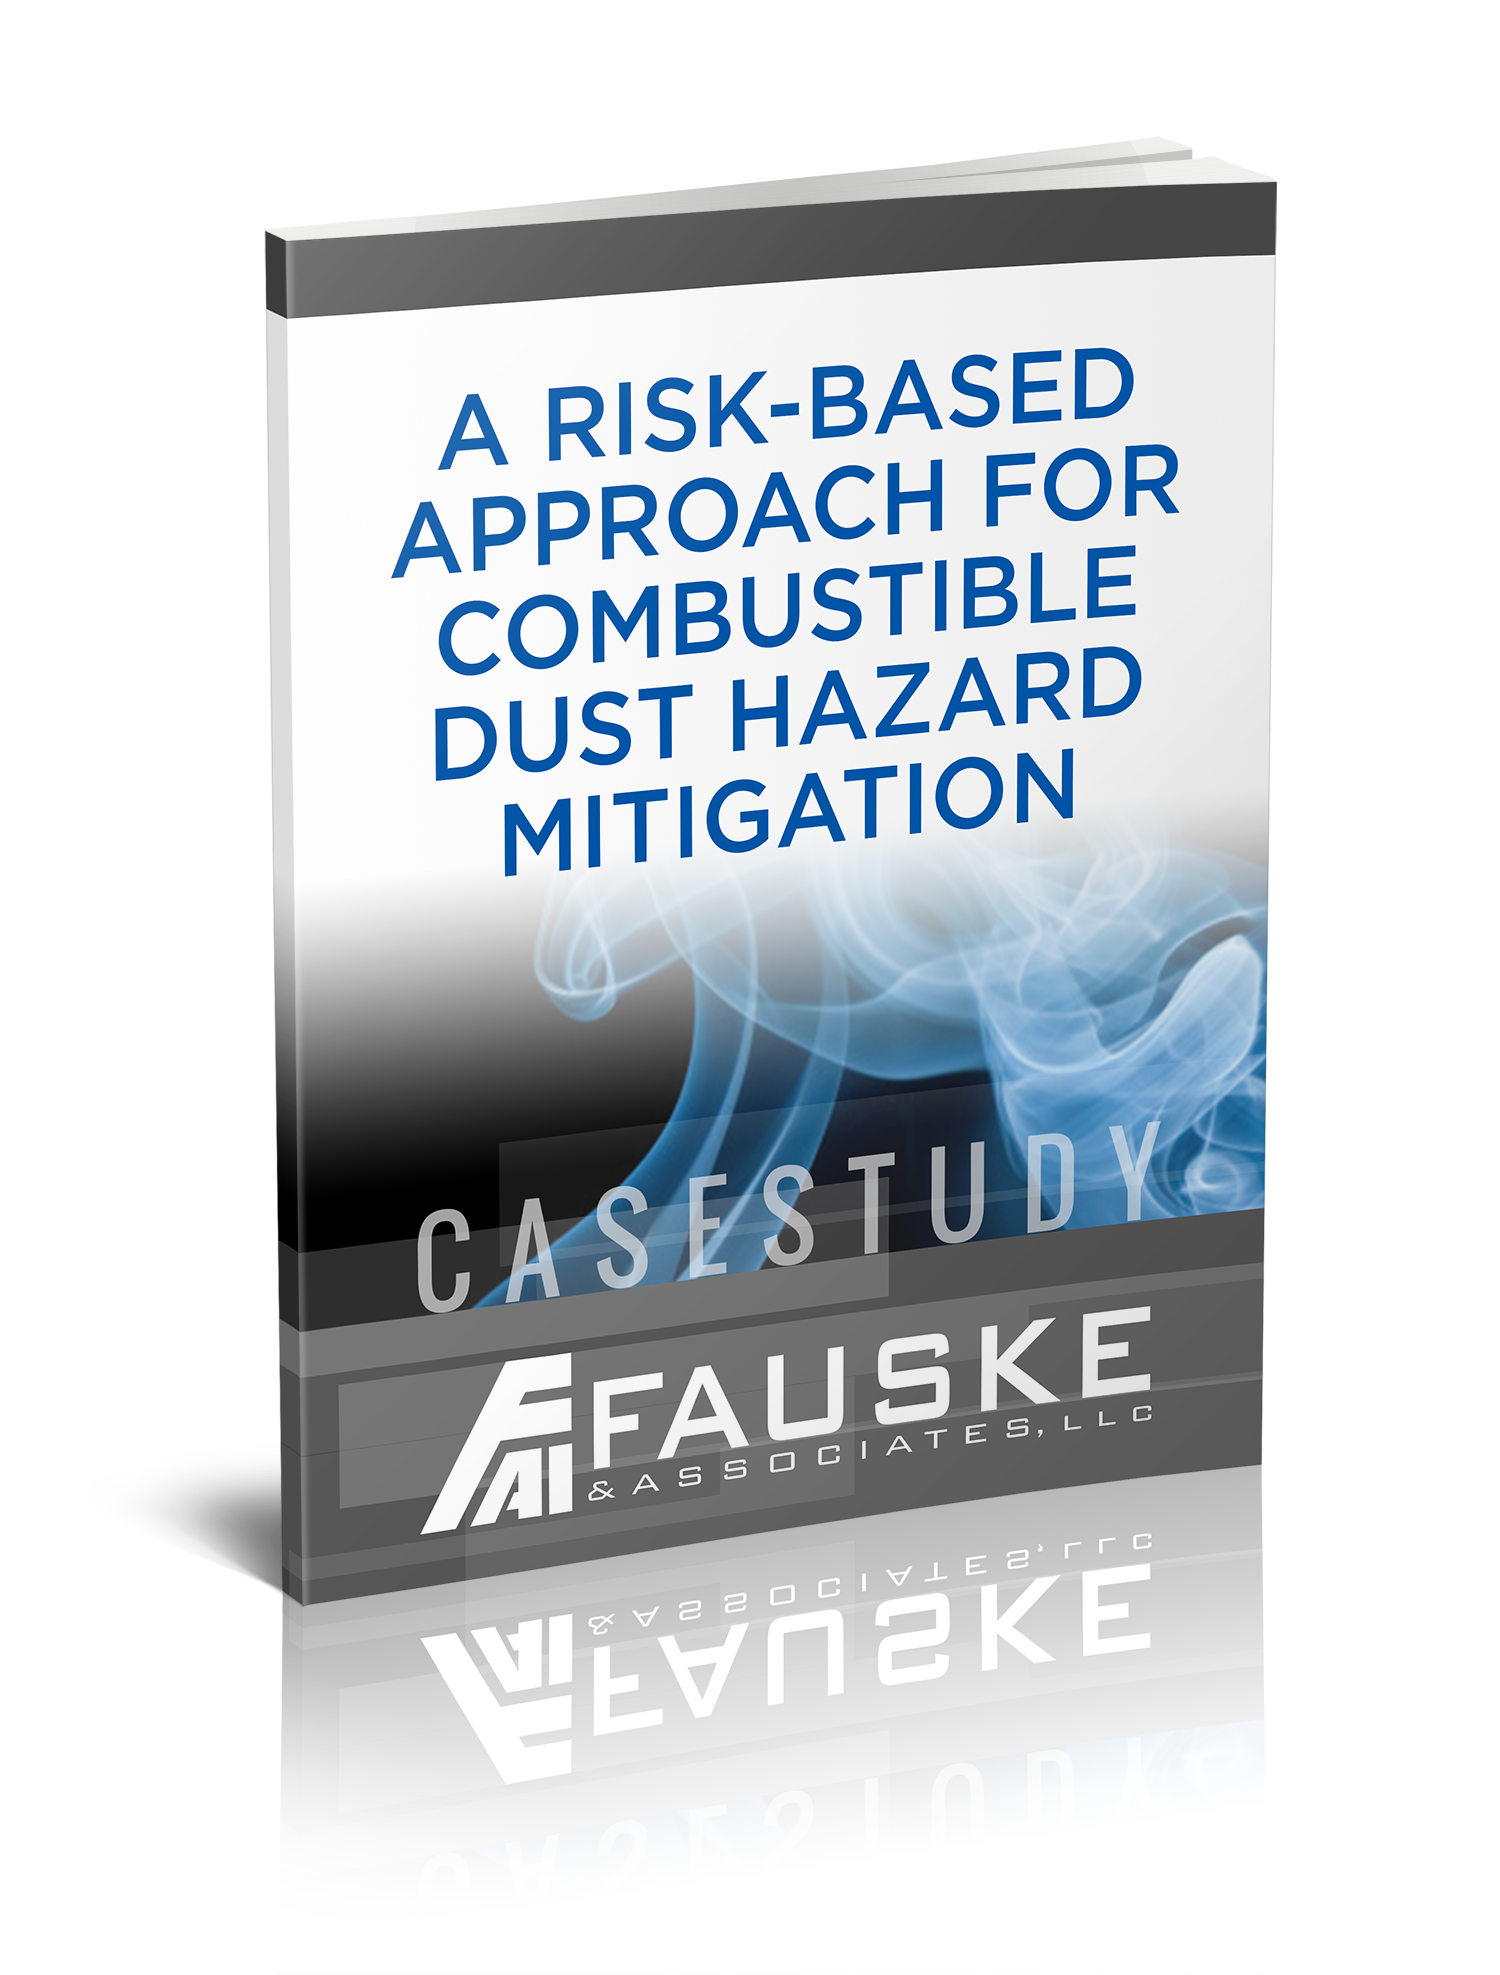 fauske-cs-risk-based-approach.png